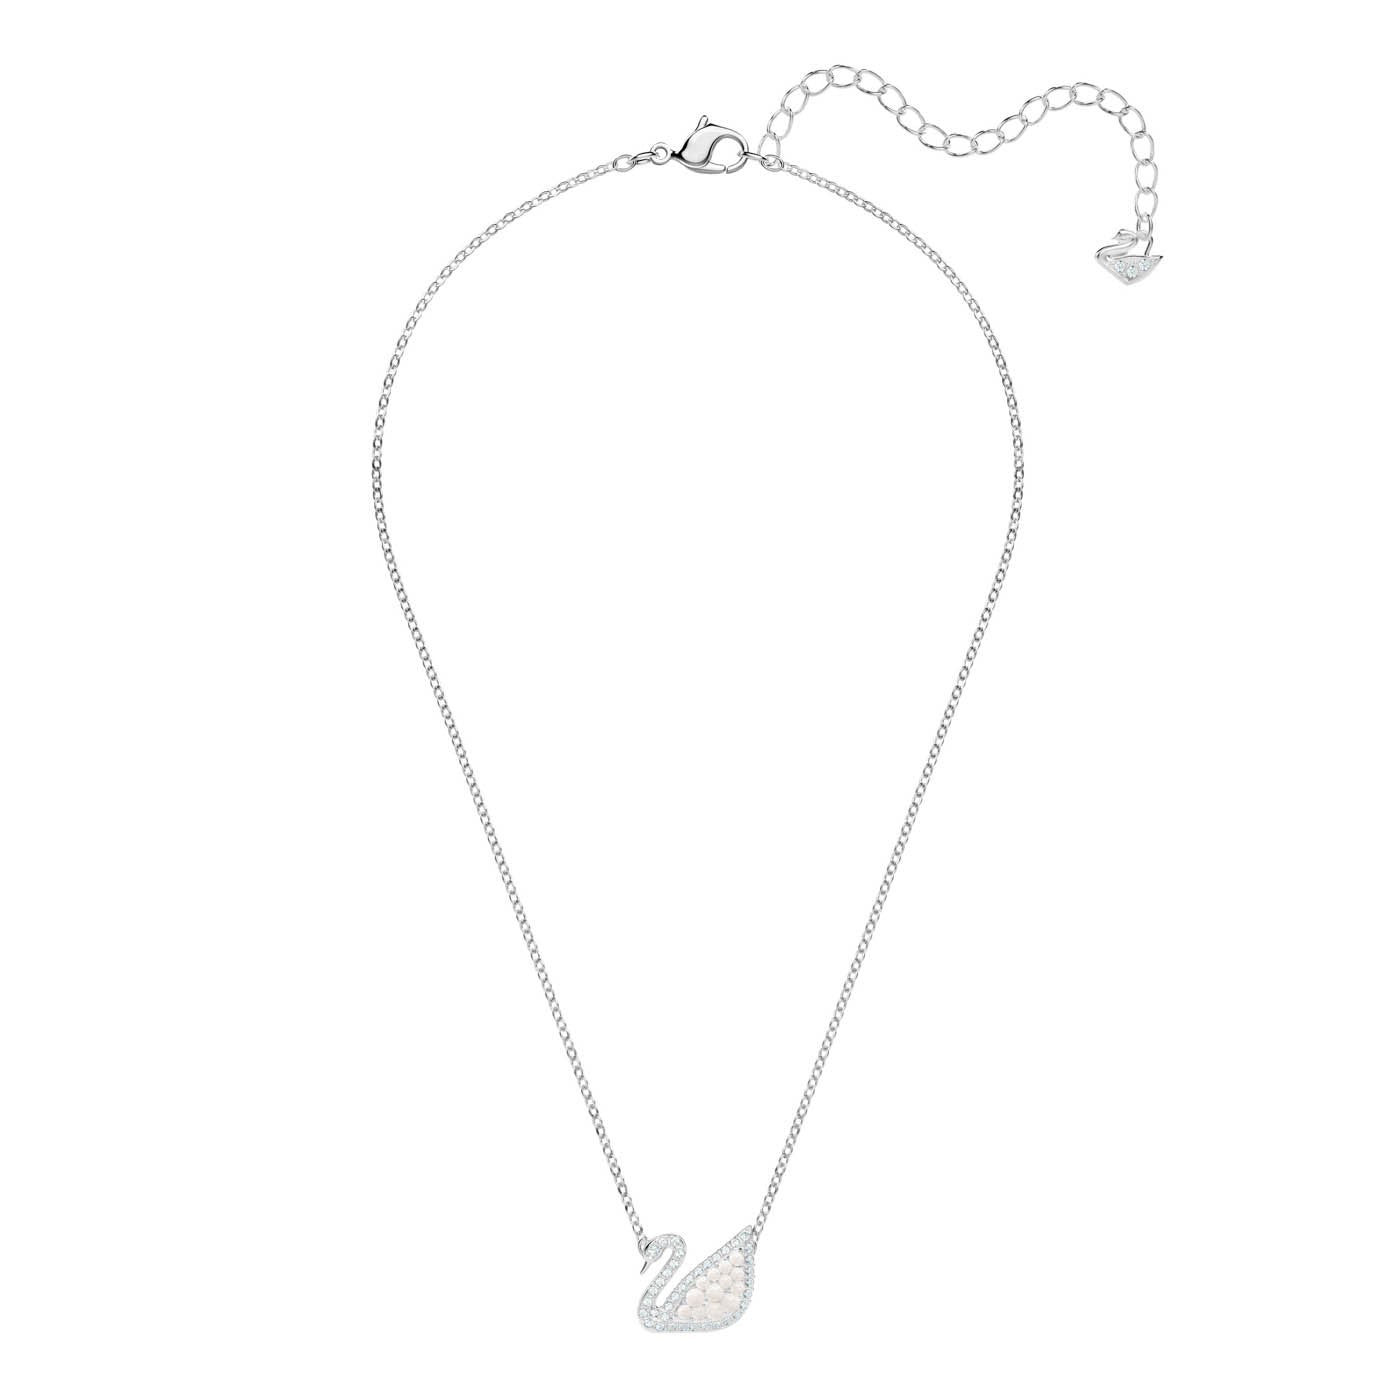 SWAROVSKI ICONIC SWAN NECKLACE, WHITE, RHODIUM PLATING